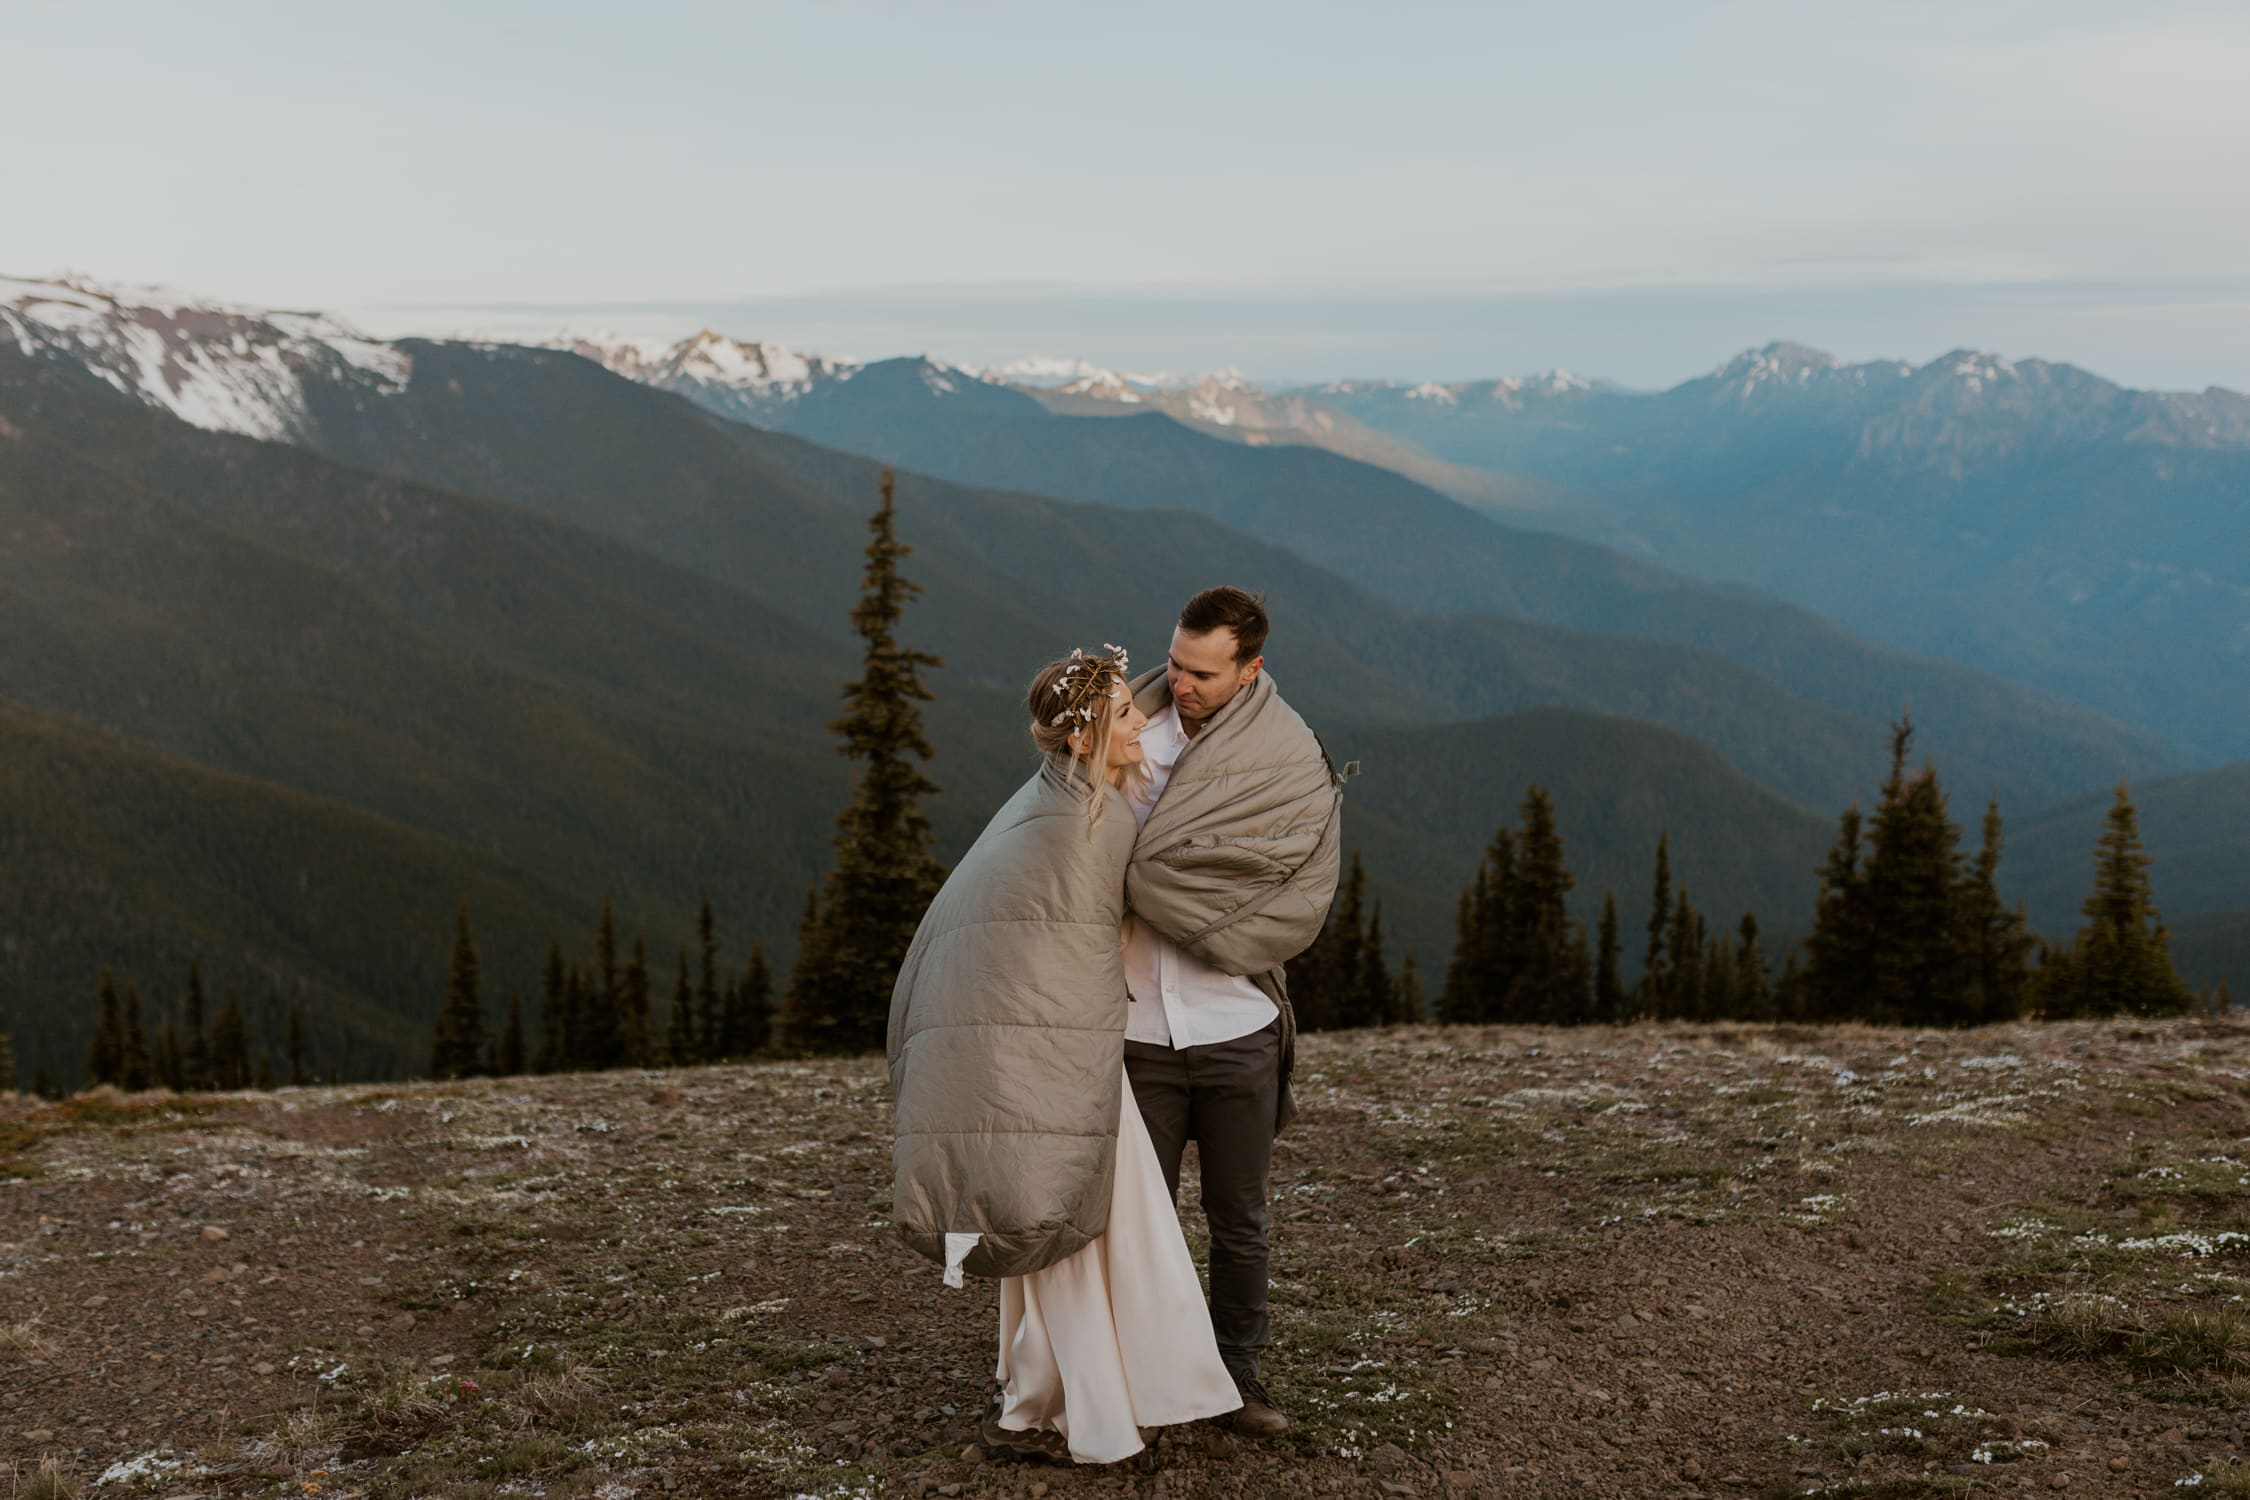 A couple wrapped in a blanket and laughing on a mountain.